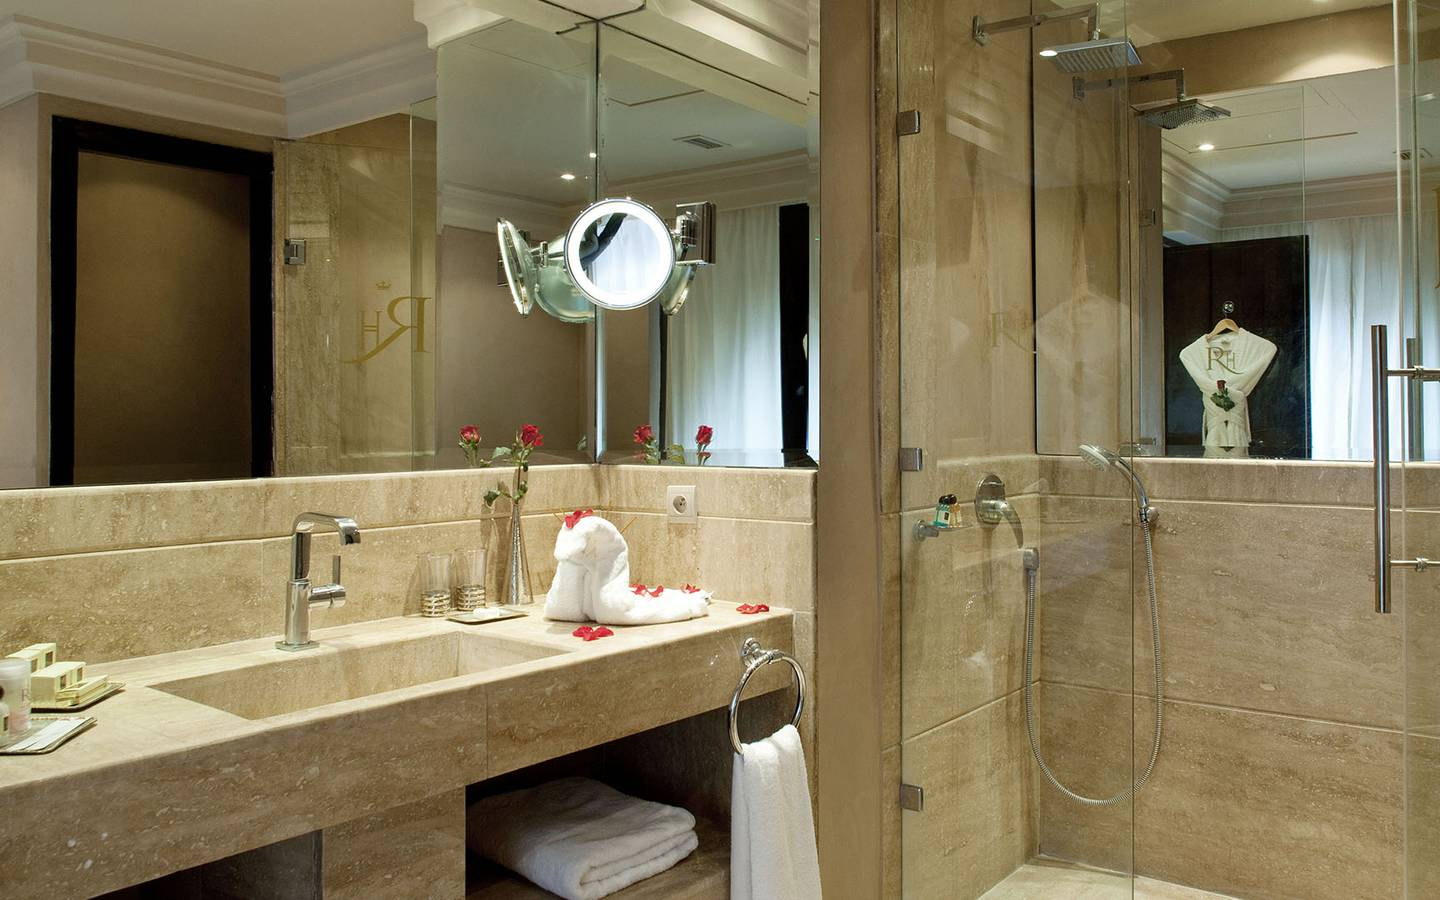 salle de bain luxe hotel hotel champs elysees friedland with salle de bain luxe hotel previous. Black Bedroom Furniture Sets. Home Design Ideas